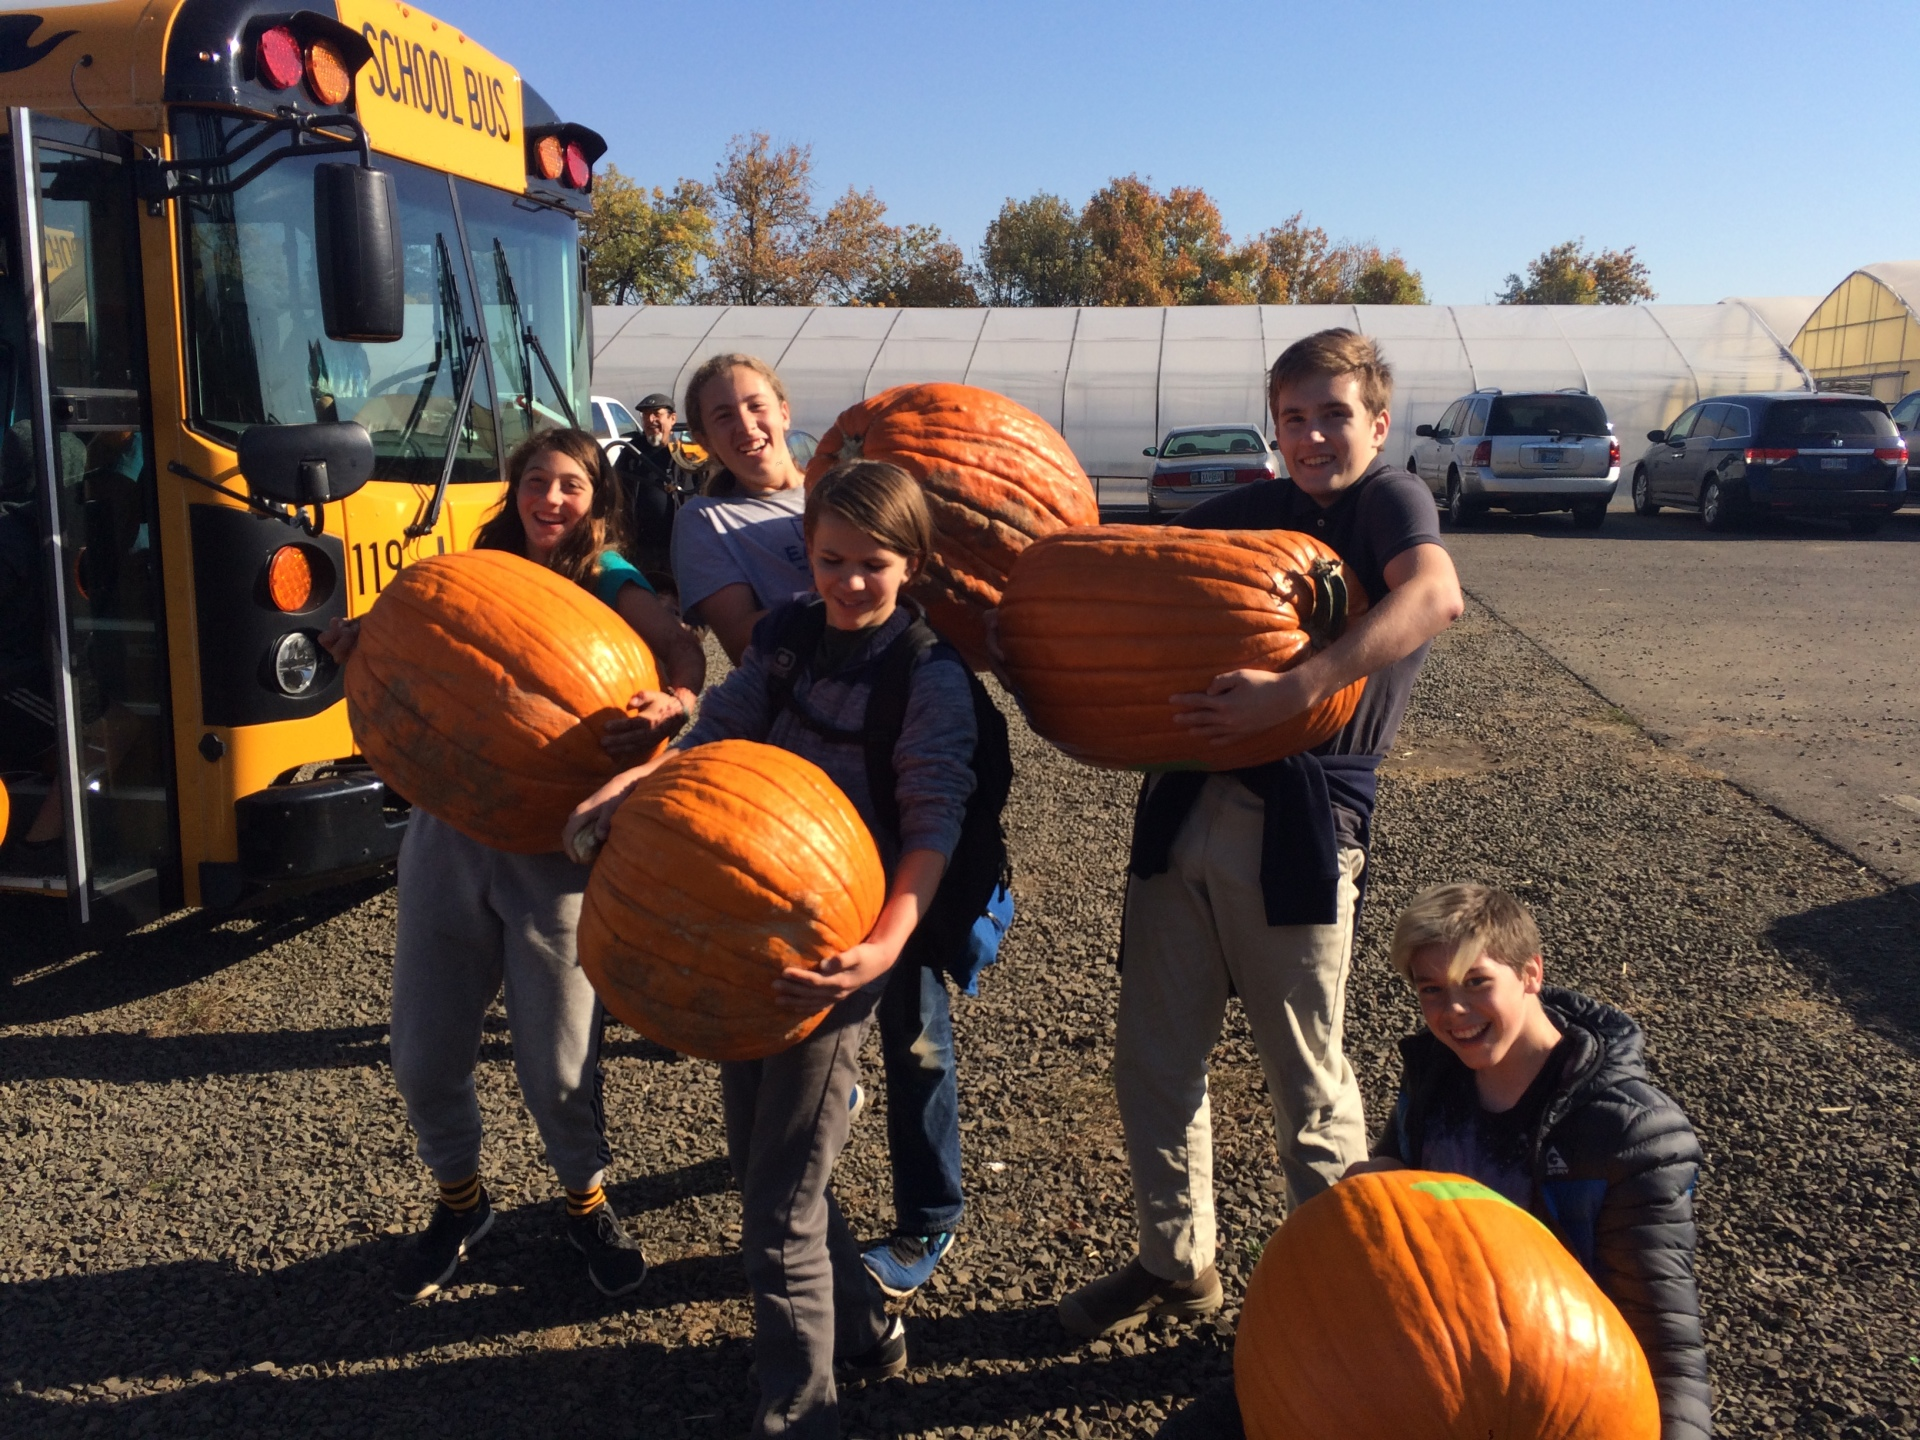 Eighth grade students pose with their pumpkins [click image to see entire picture]